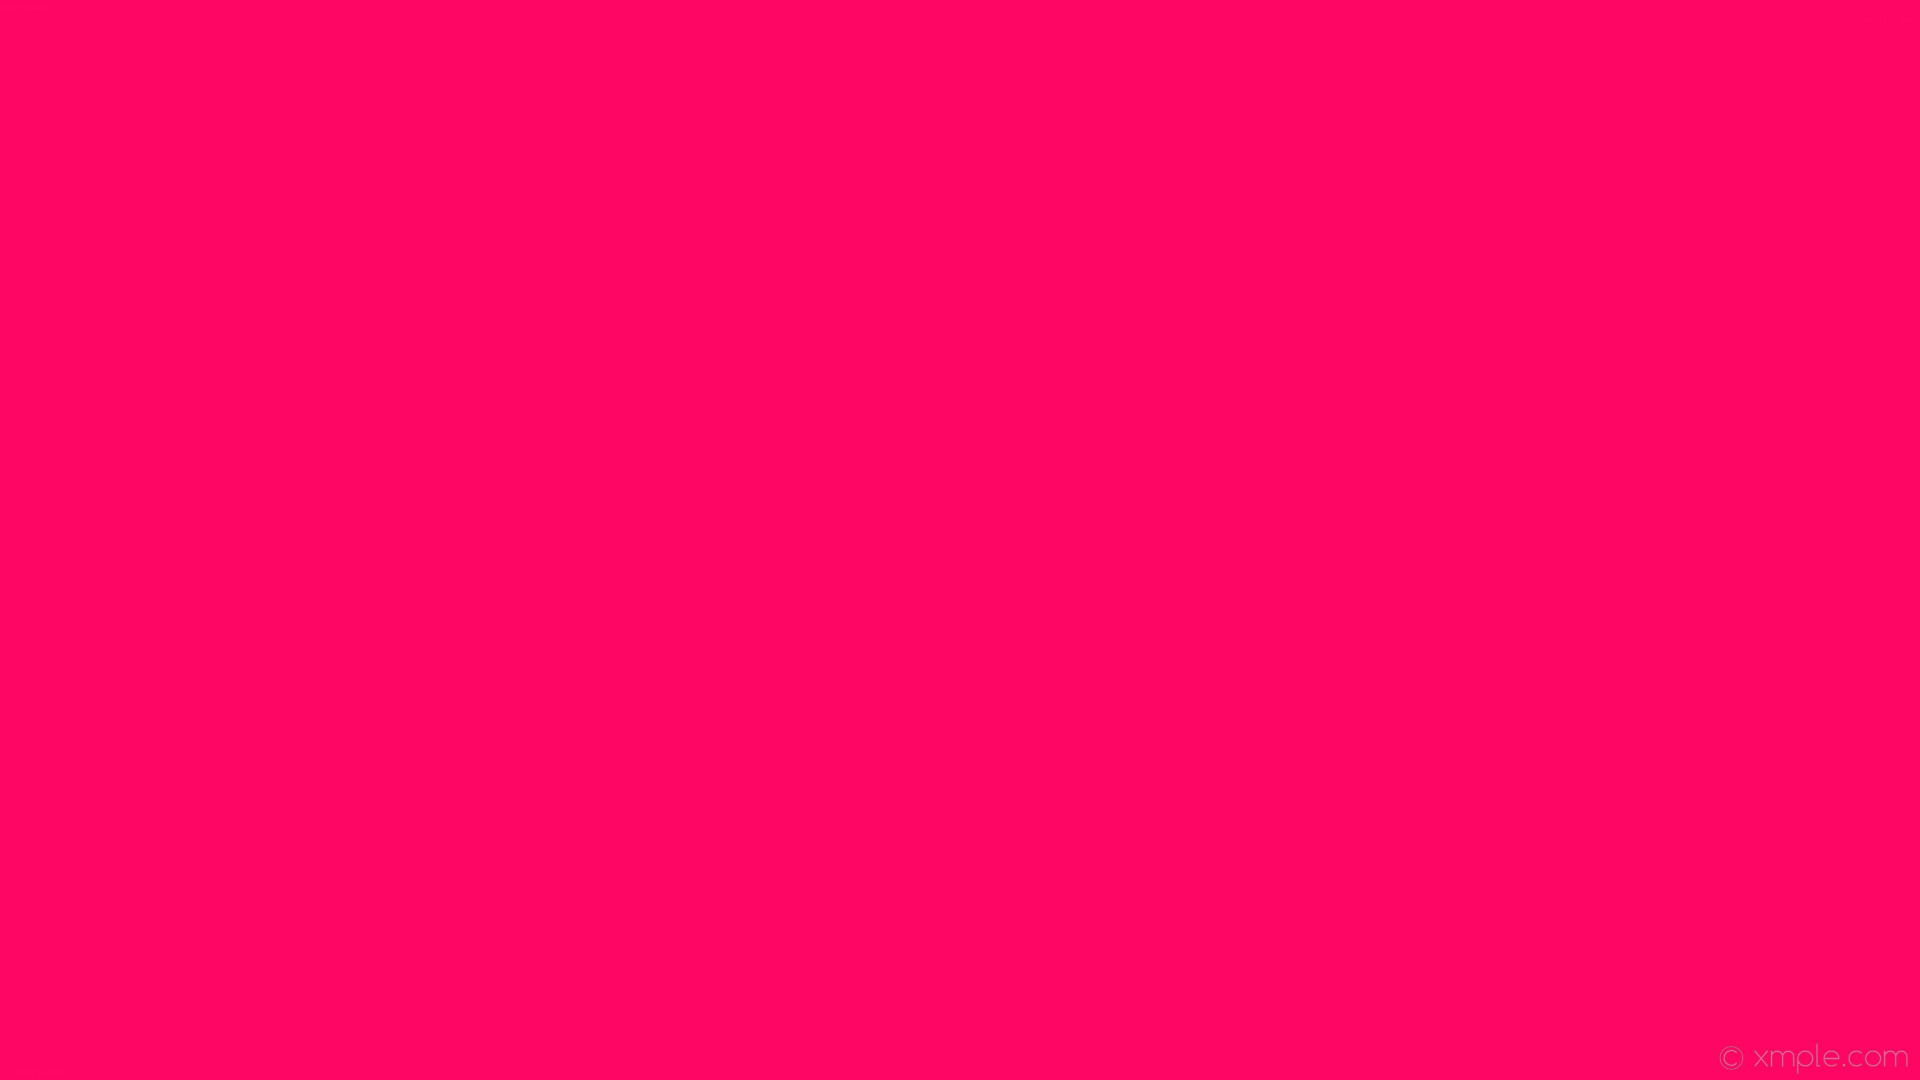 2560x1600 Hot Pink Solid Color Background |Plain Pink Backgrounds